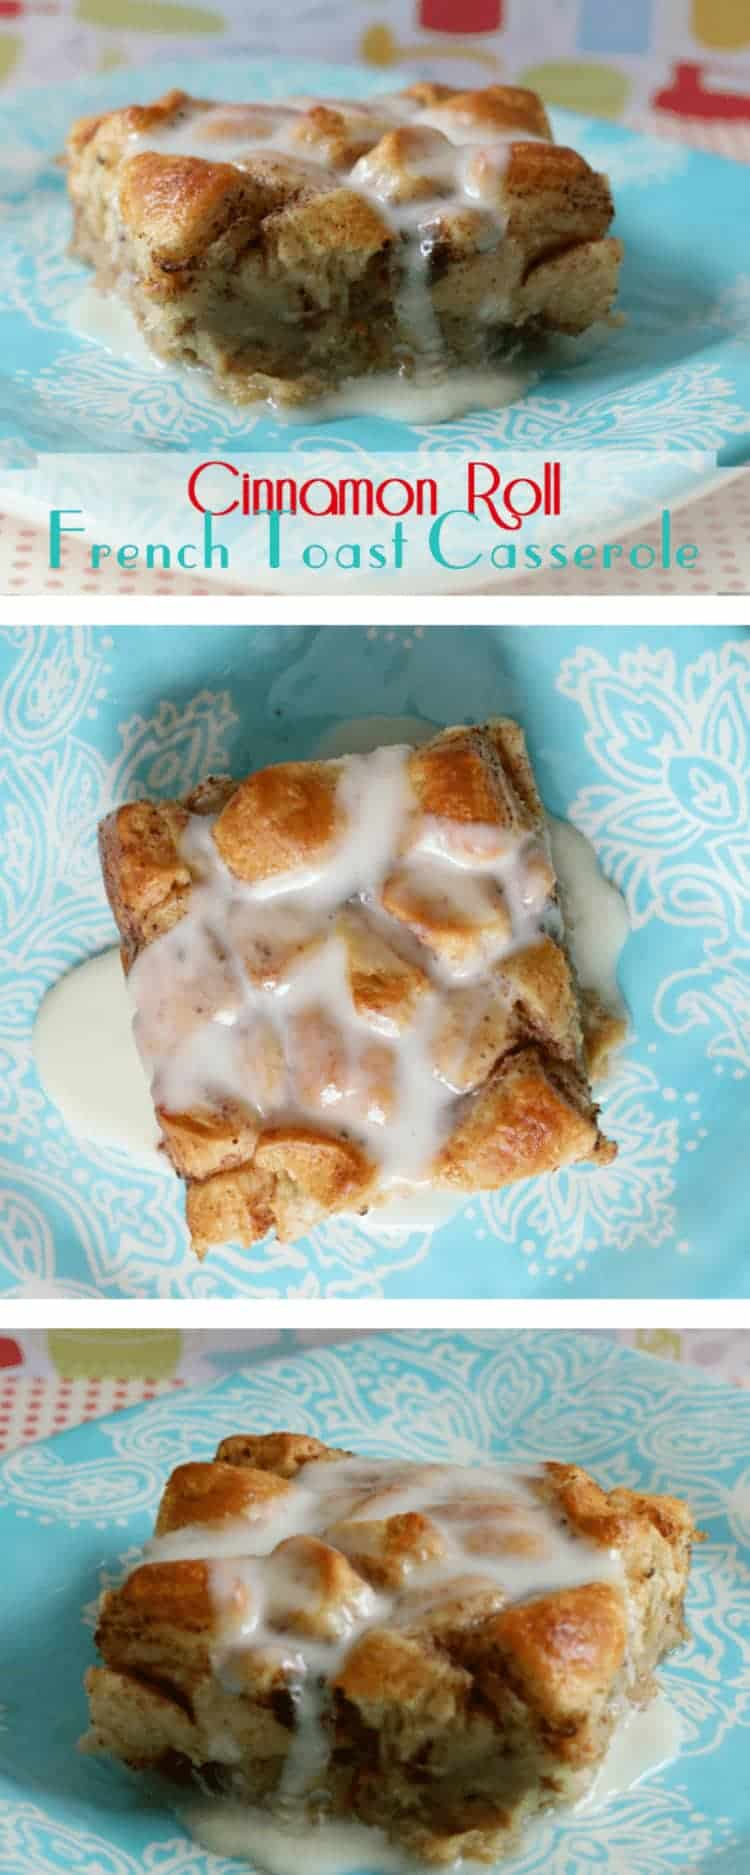 Collage of three photos of finished Cinnamon Roll French Toast Casserole